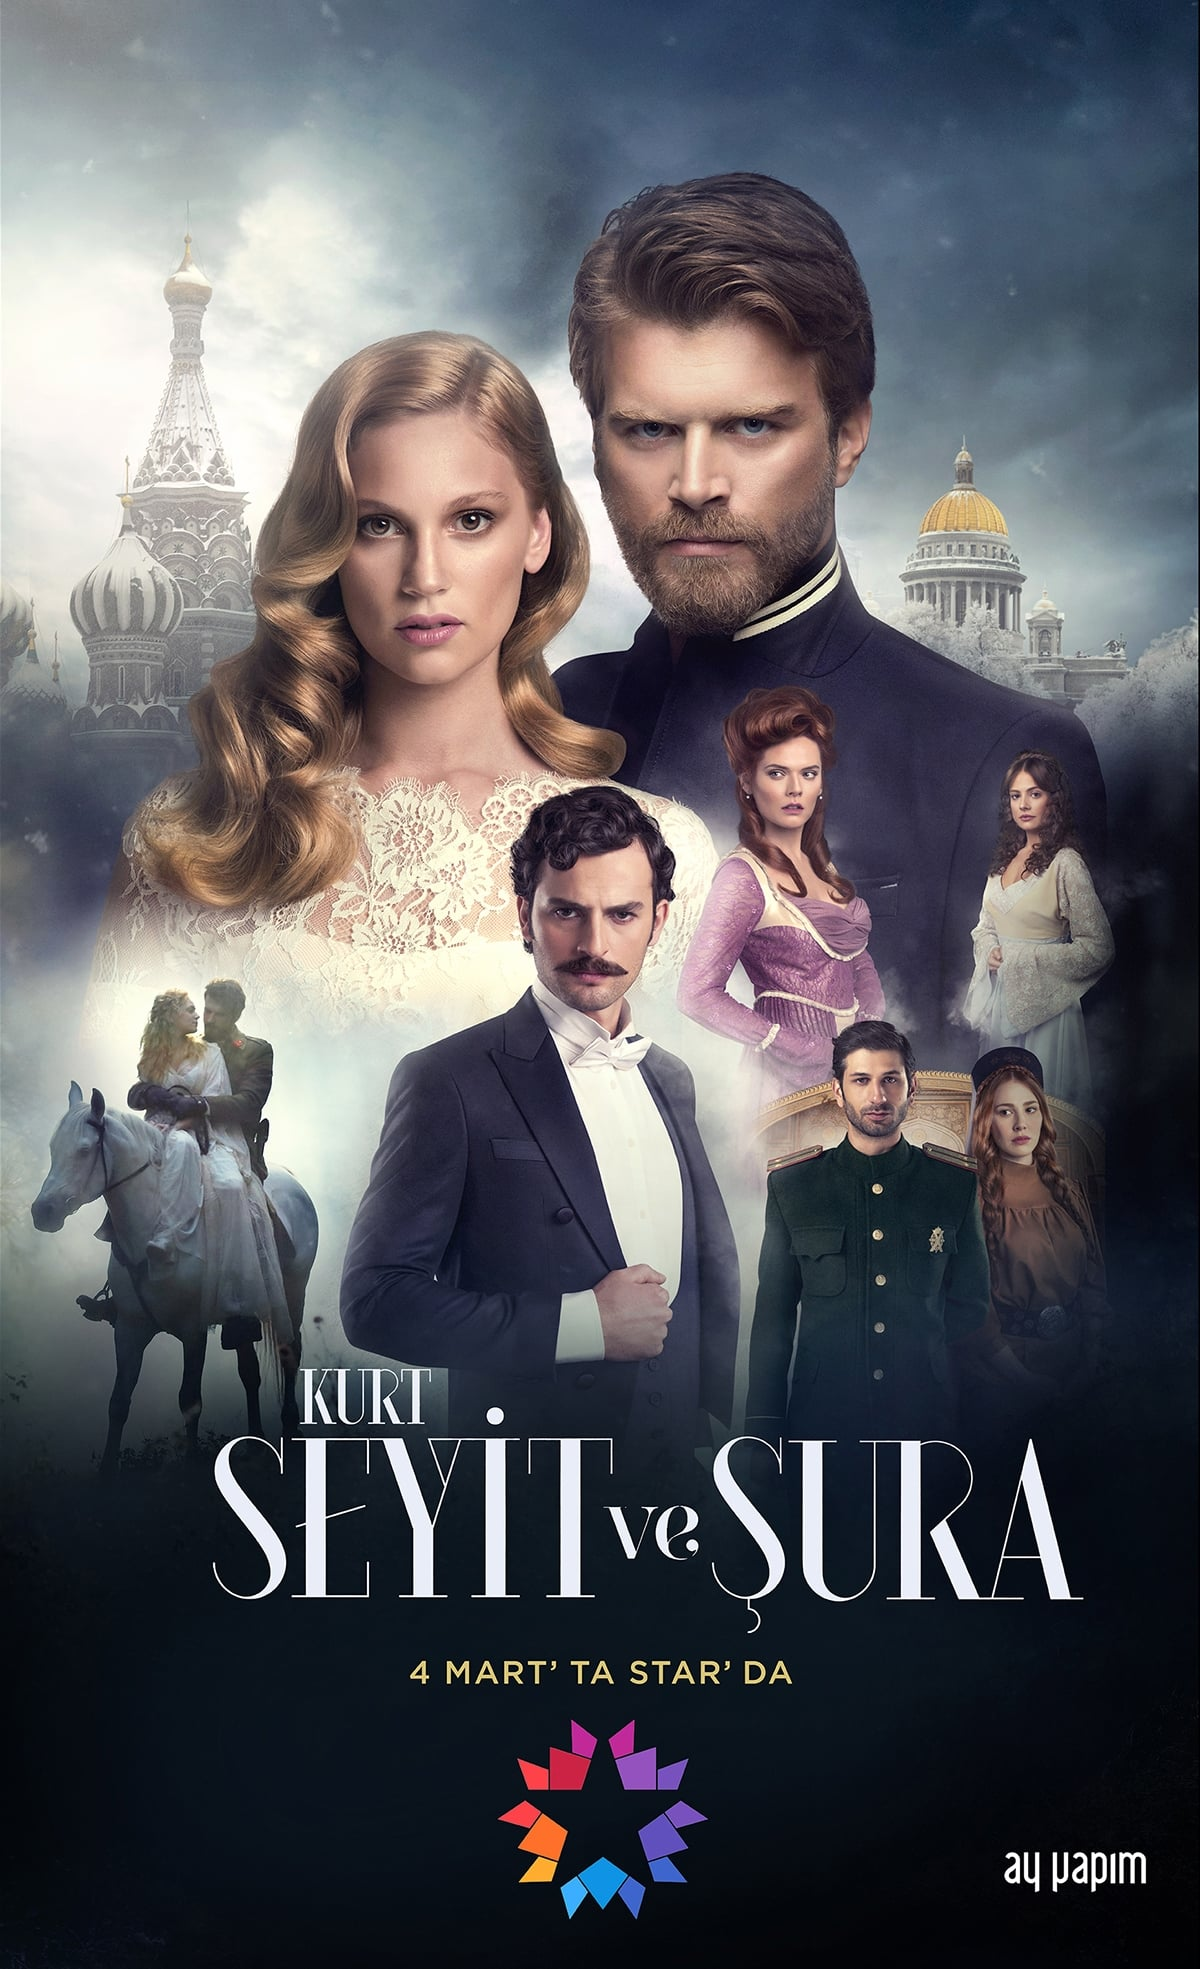 Kurt Seyit ve Şura series tv complet